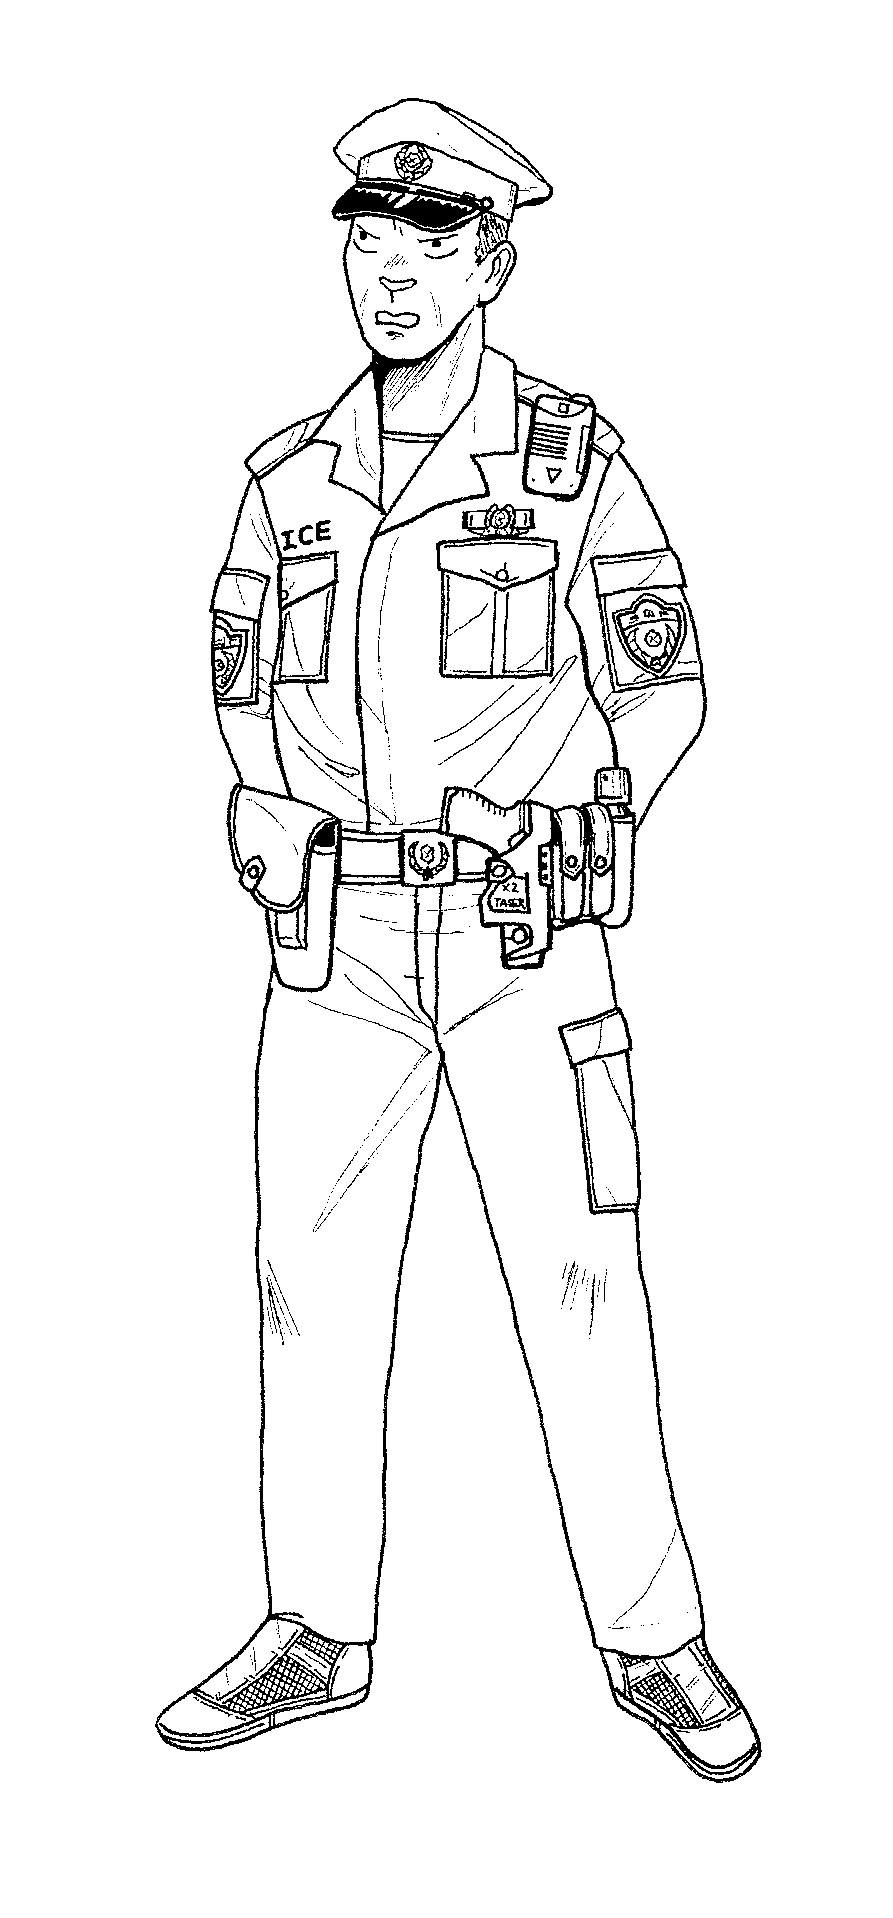 Police Officer Drawing at GetDrawings.com   Free for personal use ...